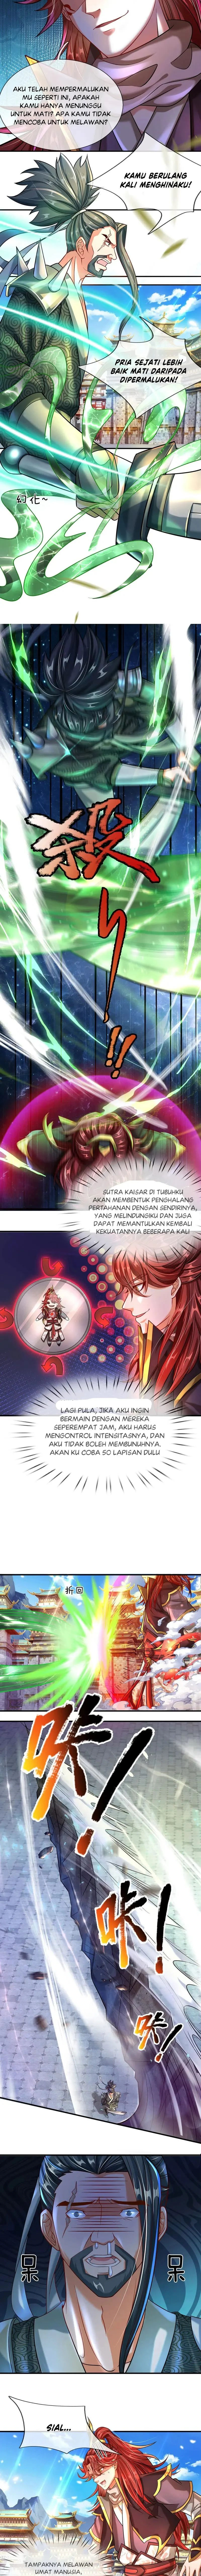 The Diary Of Demon Emperor Chapter 5